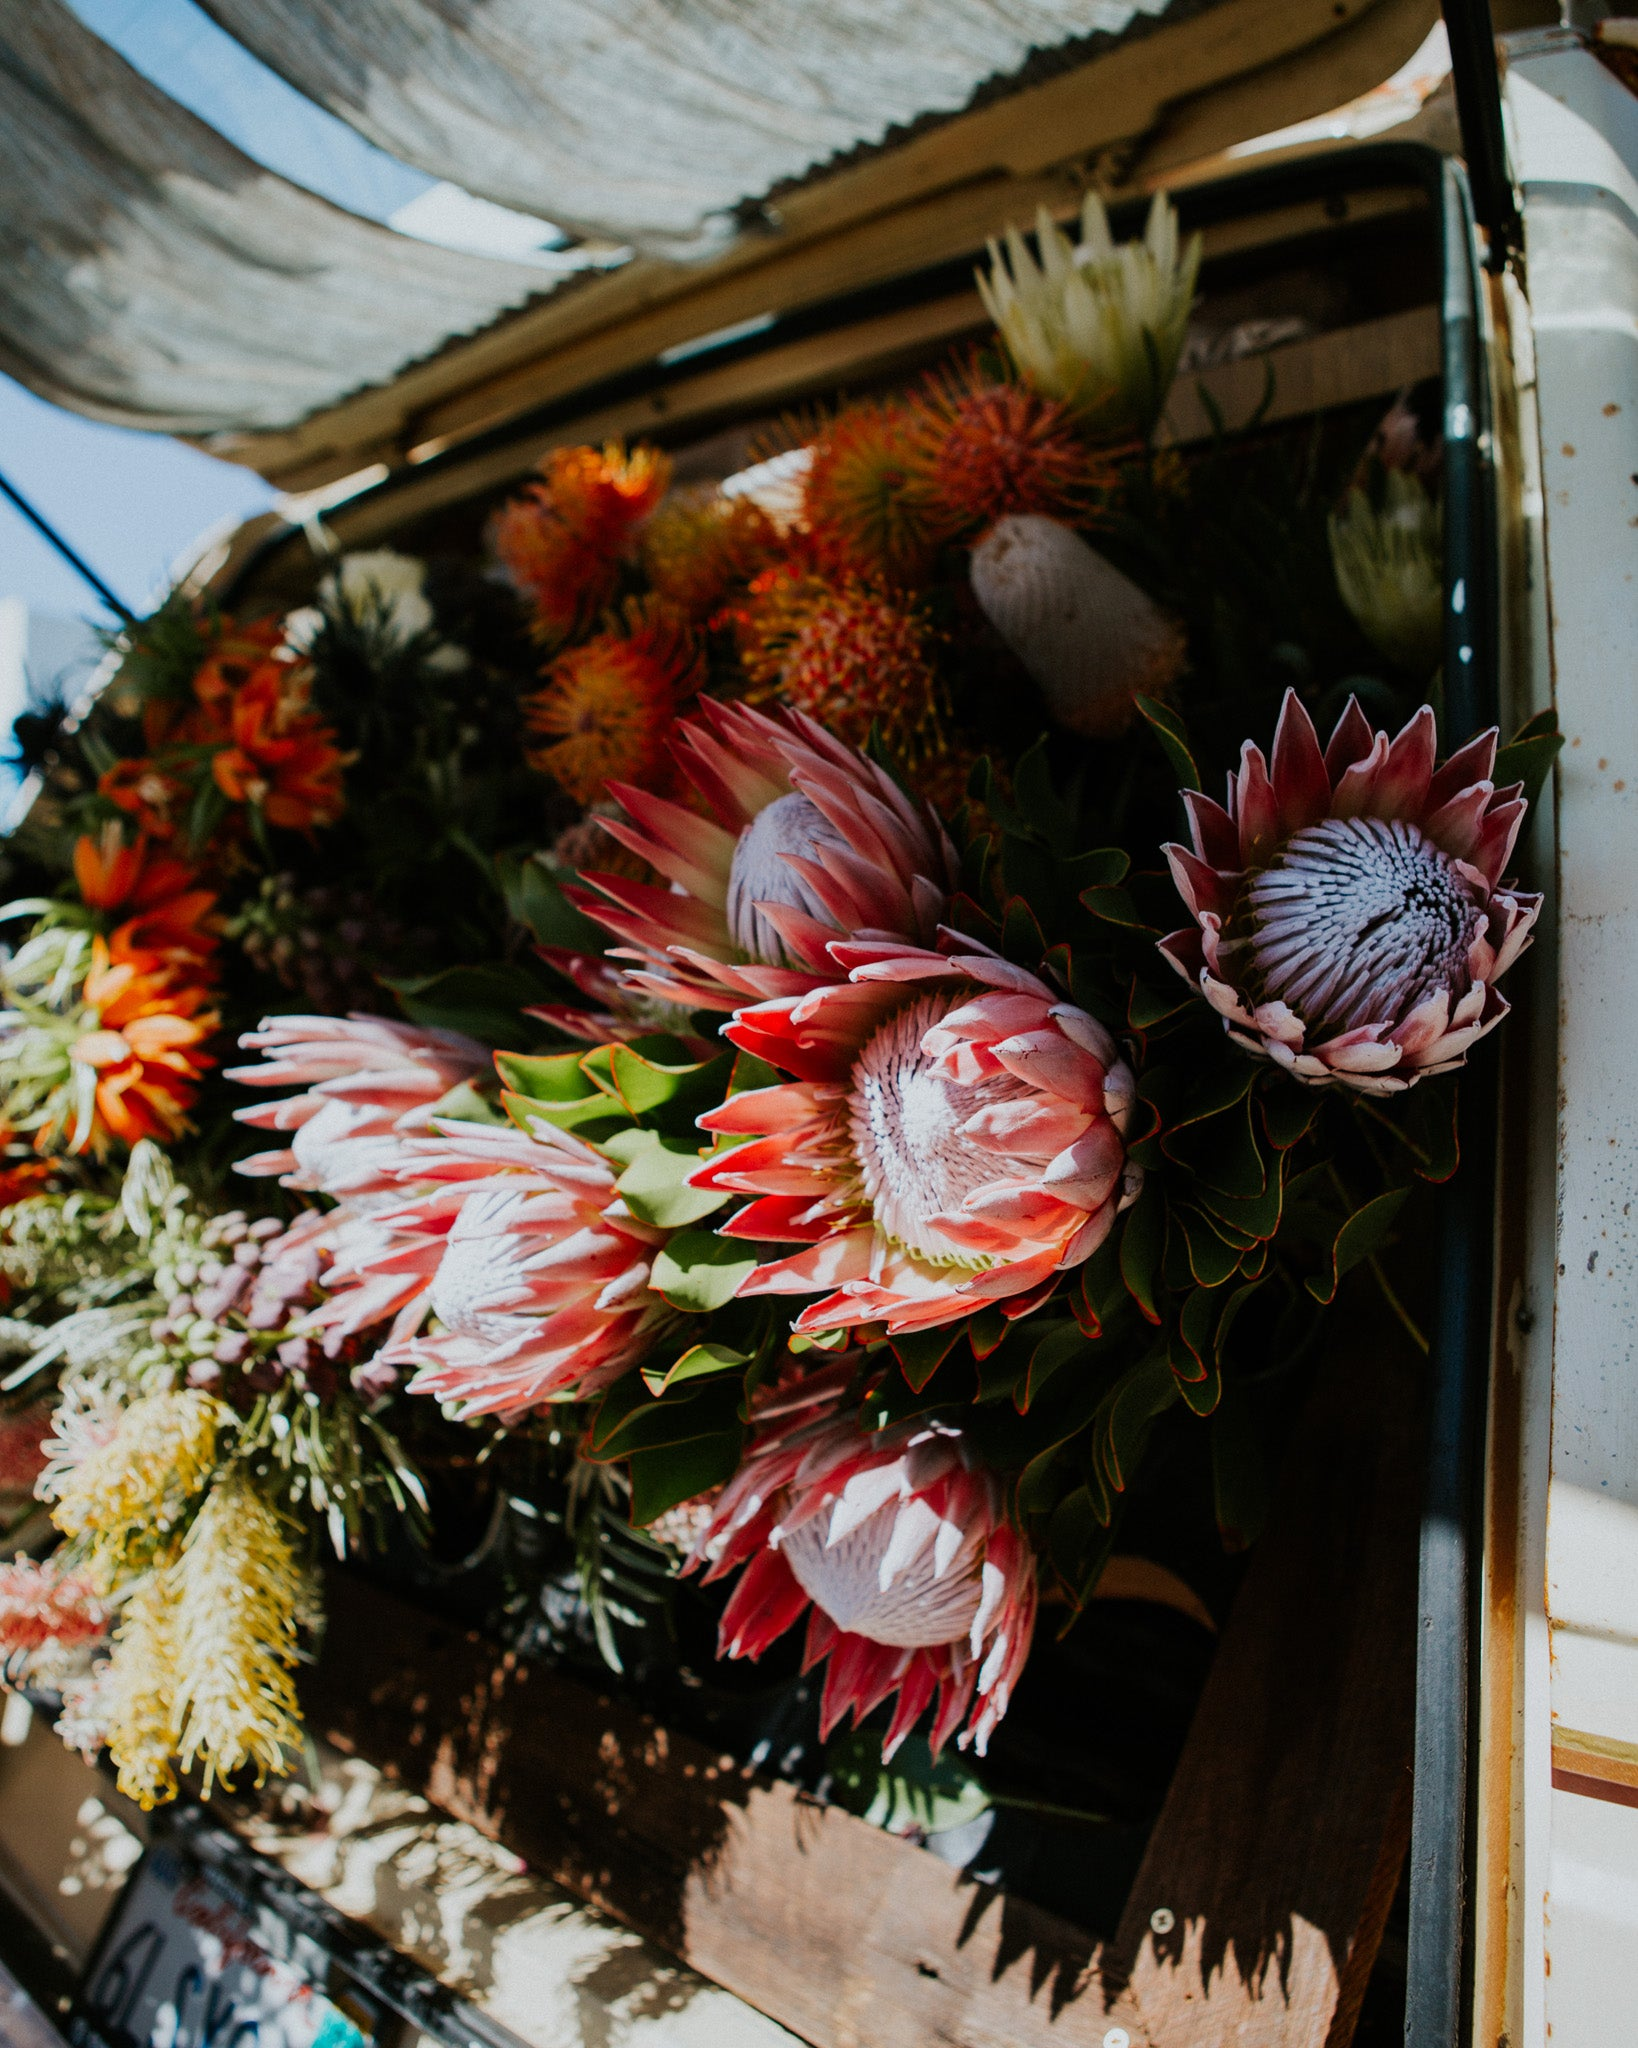 The flowers setup inside the van with the Unlikely Florist